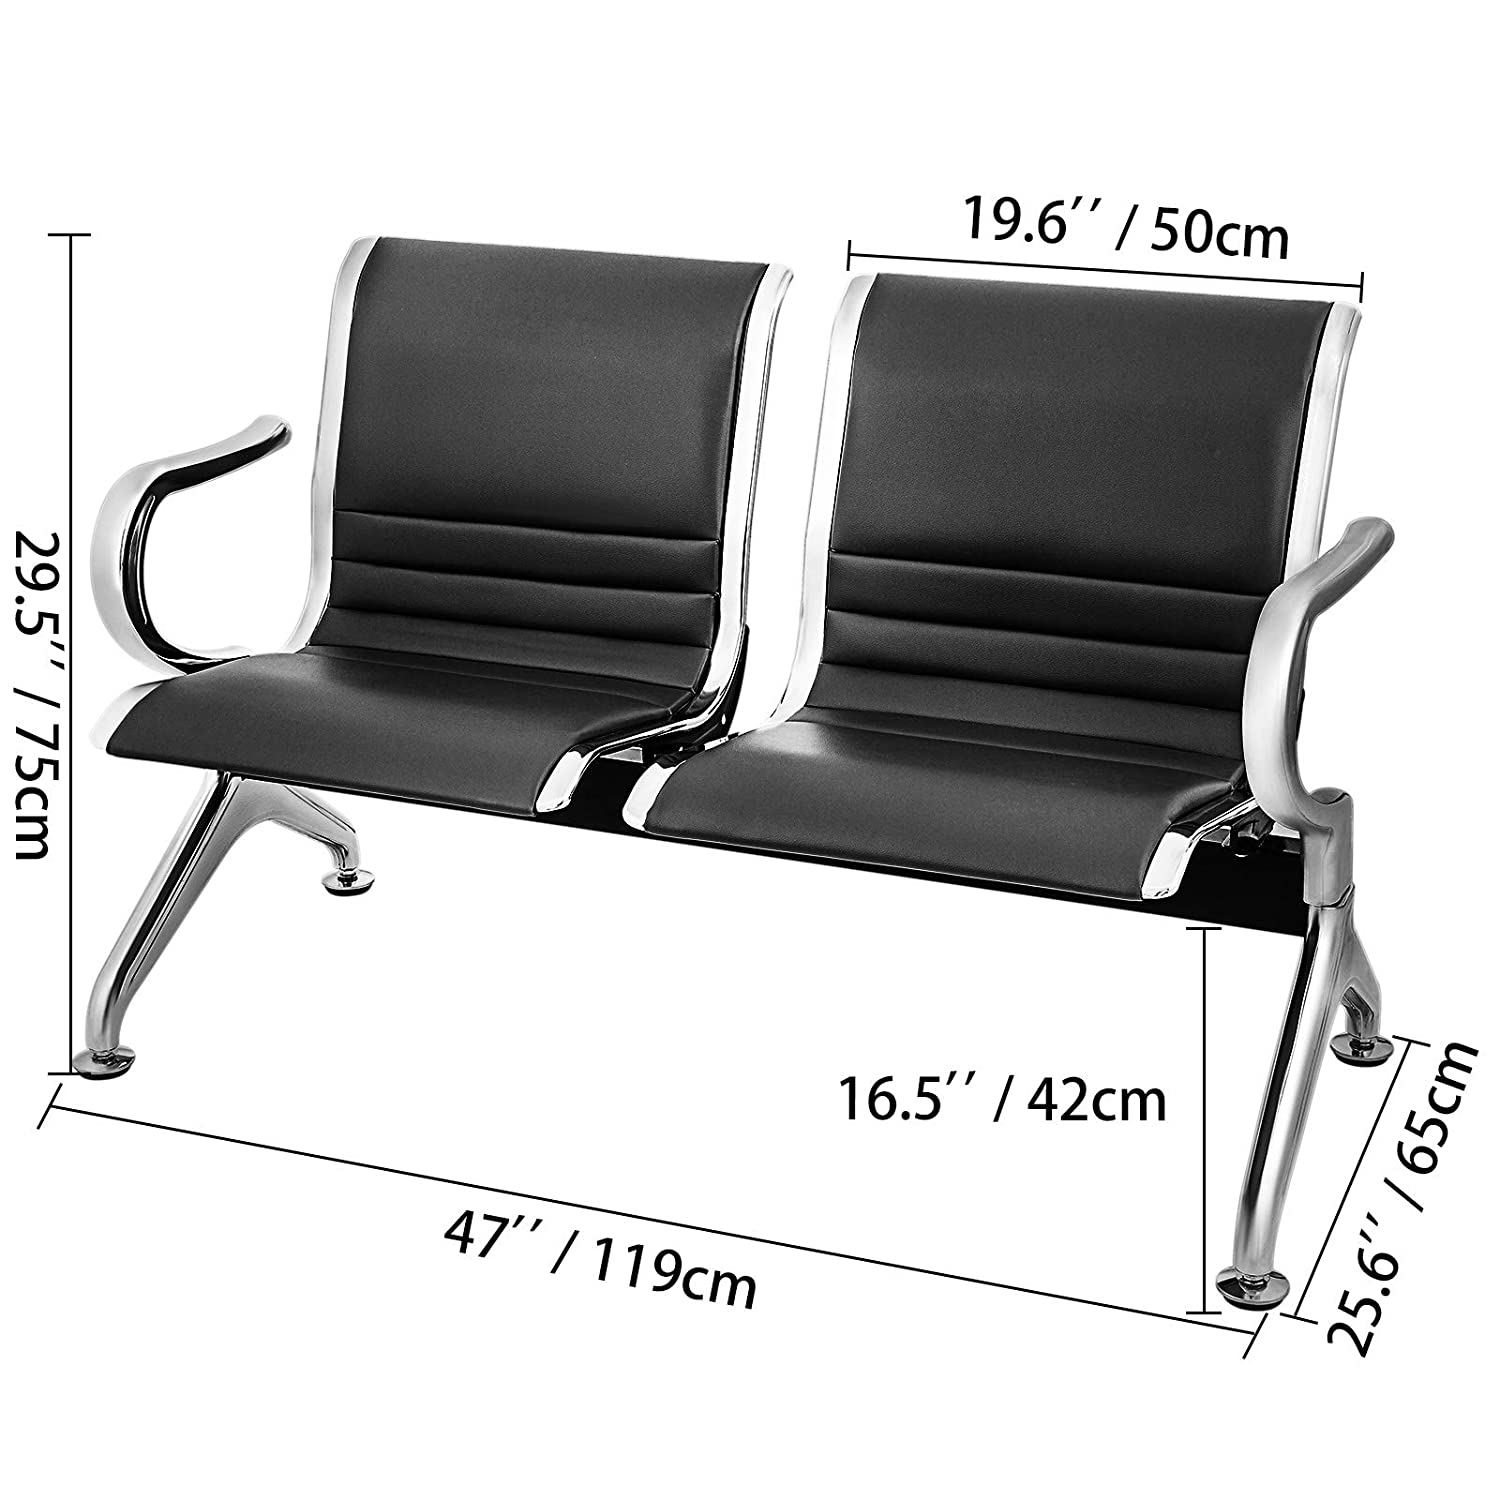 Excellent Vevor Waiting Room Chairs 2 Seat Pu Leather Business Reception Bench Waiting Chairs For Office Barbershop Salon Airport Bank Hospital Market 2 Unemploymentrelief Wooden Chair Designs For Living Room Unemploymentrelieforg